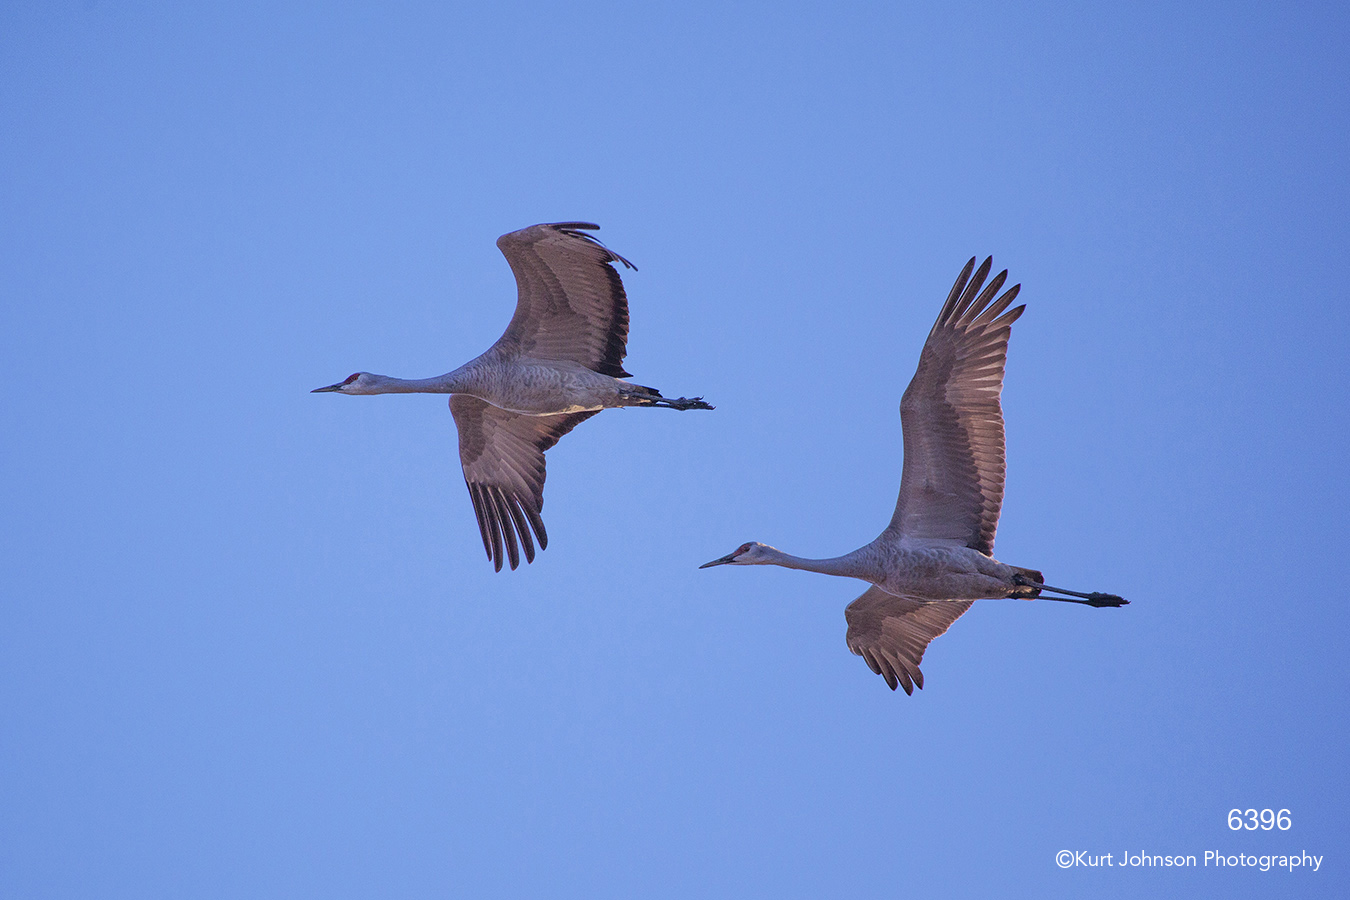 wildlife cranes birds sky sandhill blue